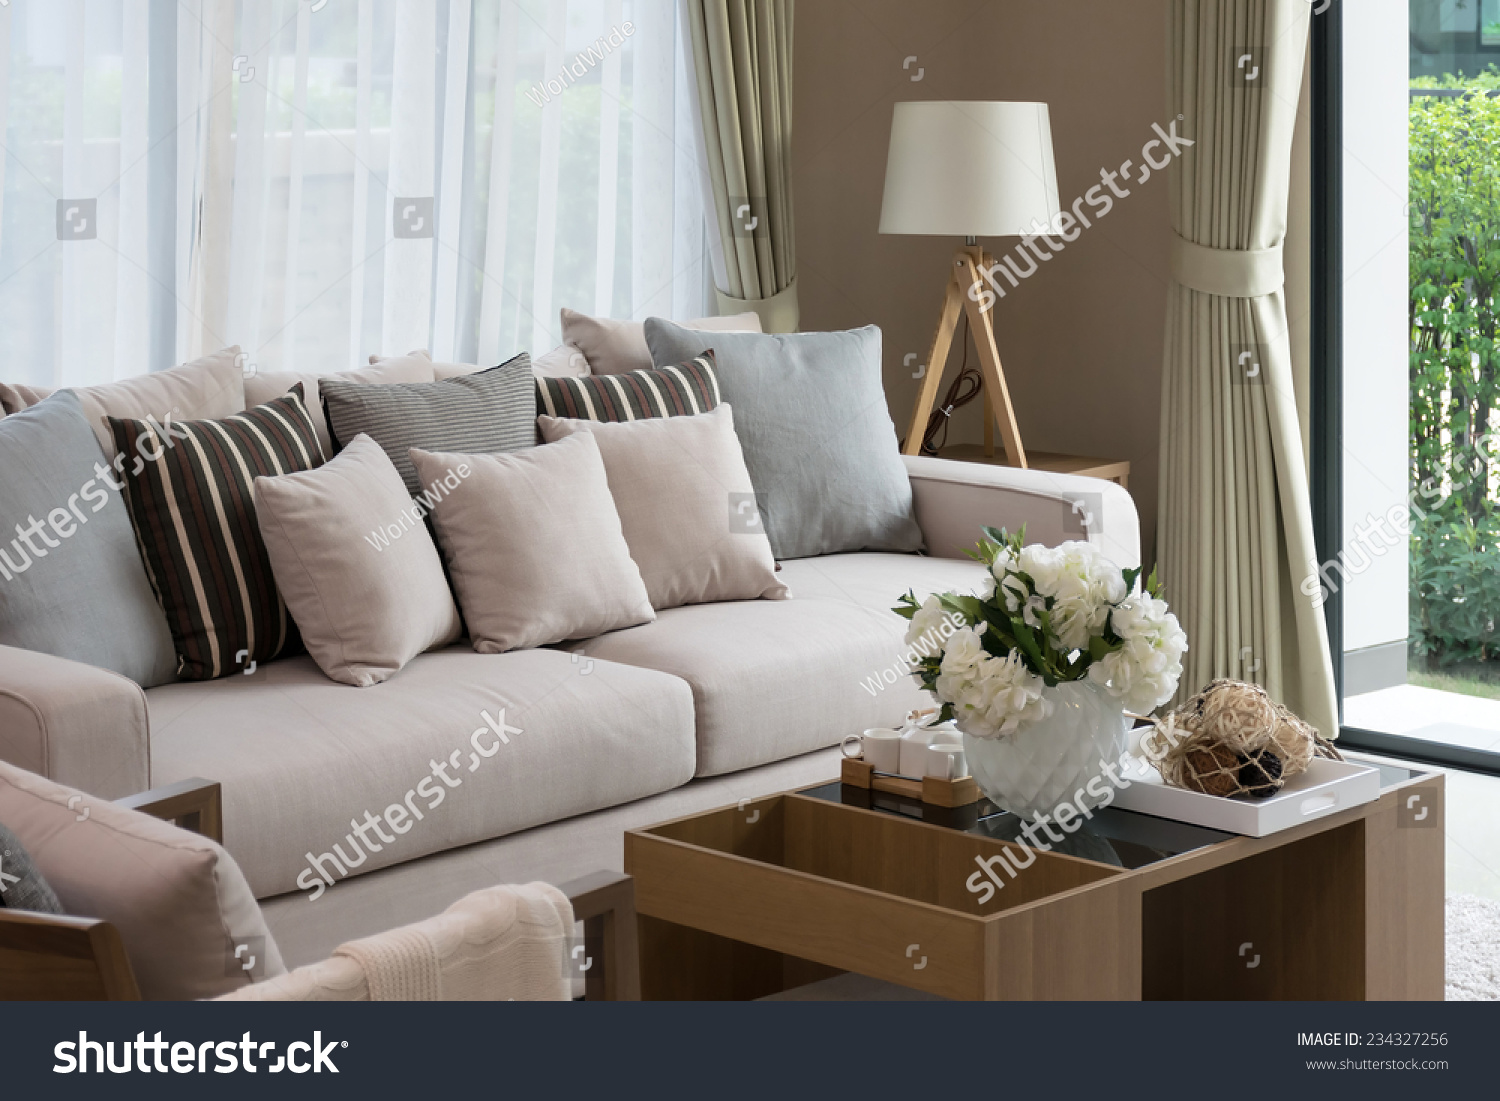 living room anastasia.jpg